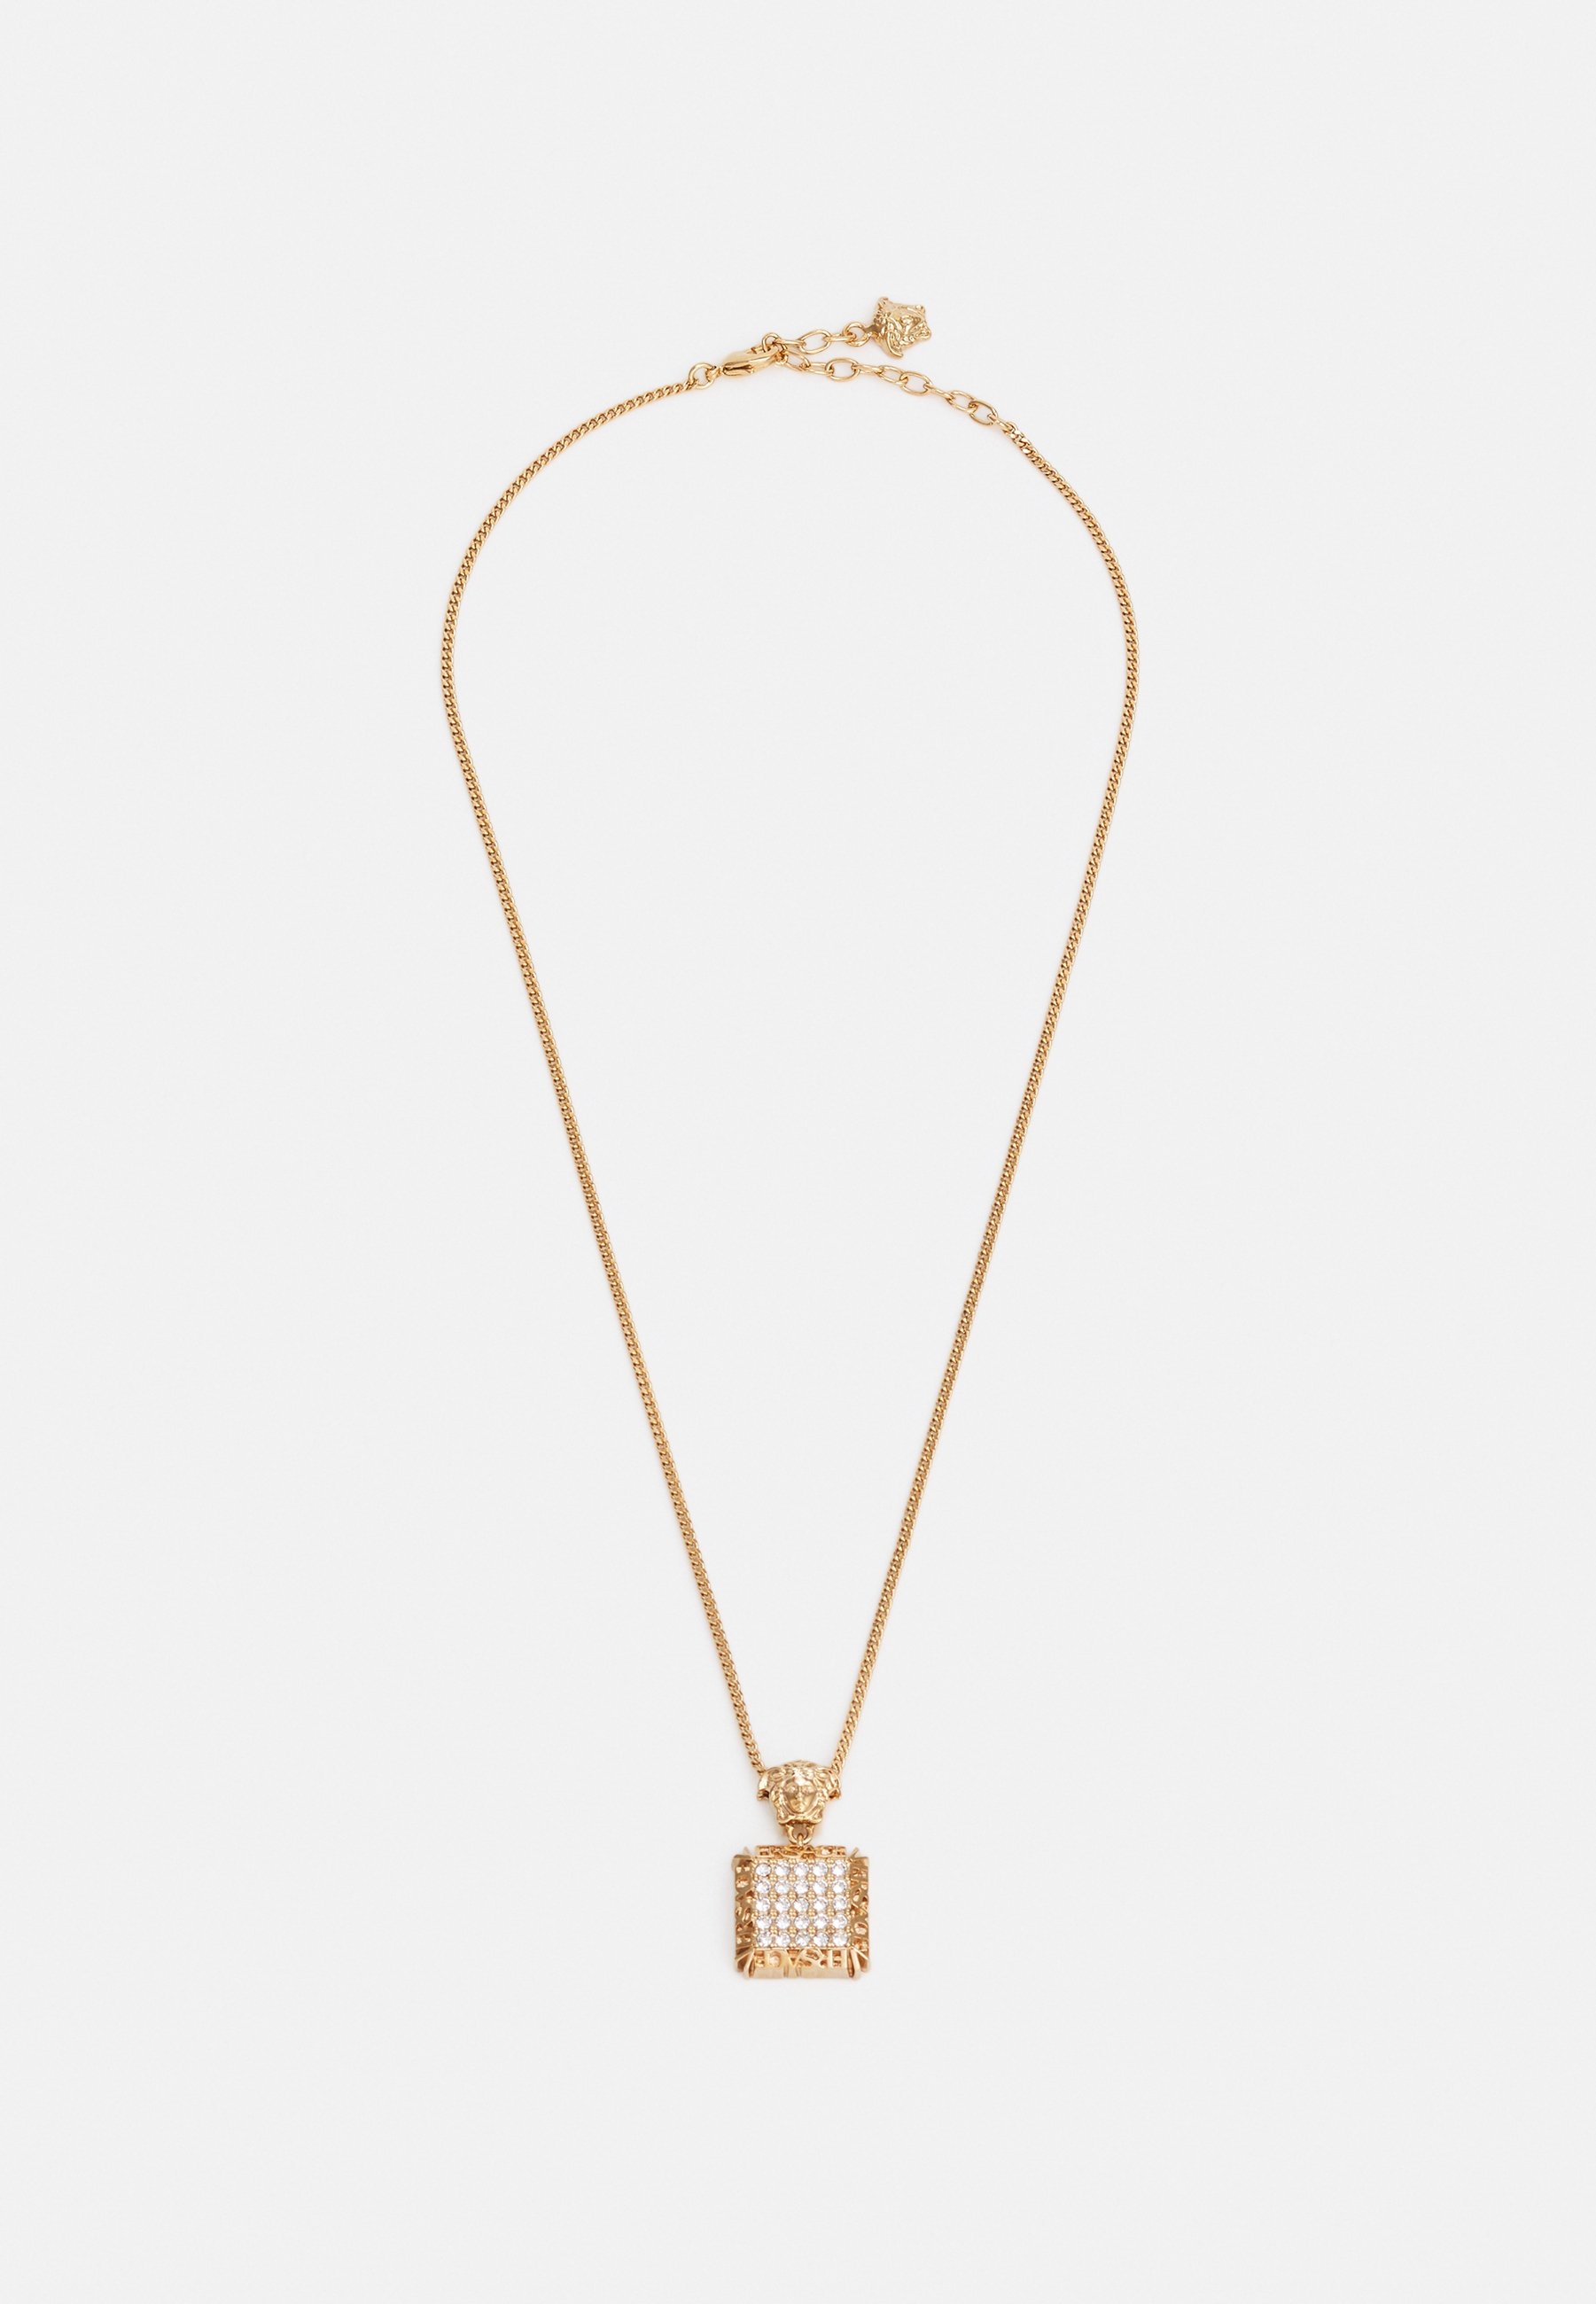 Homme FASHION JEWELRY UNISEX - Collier